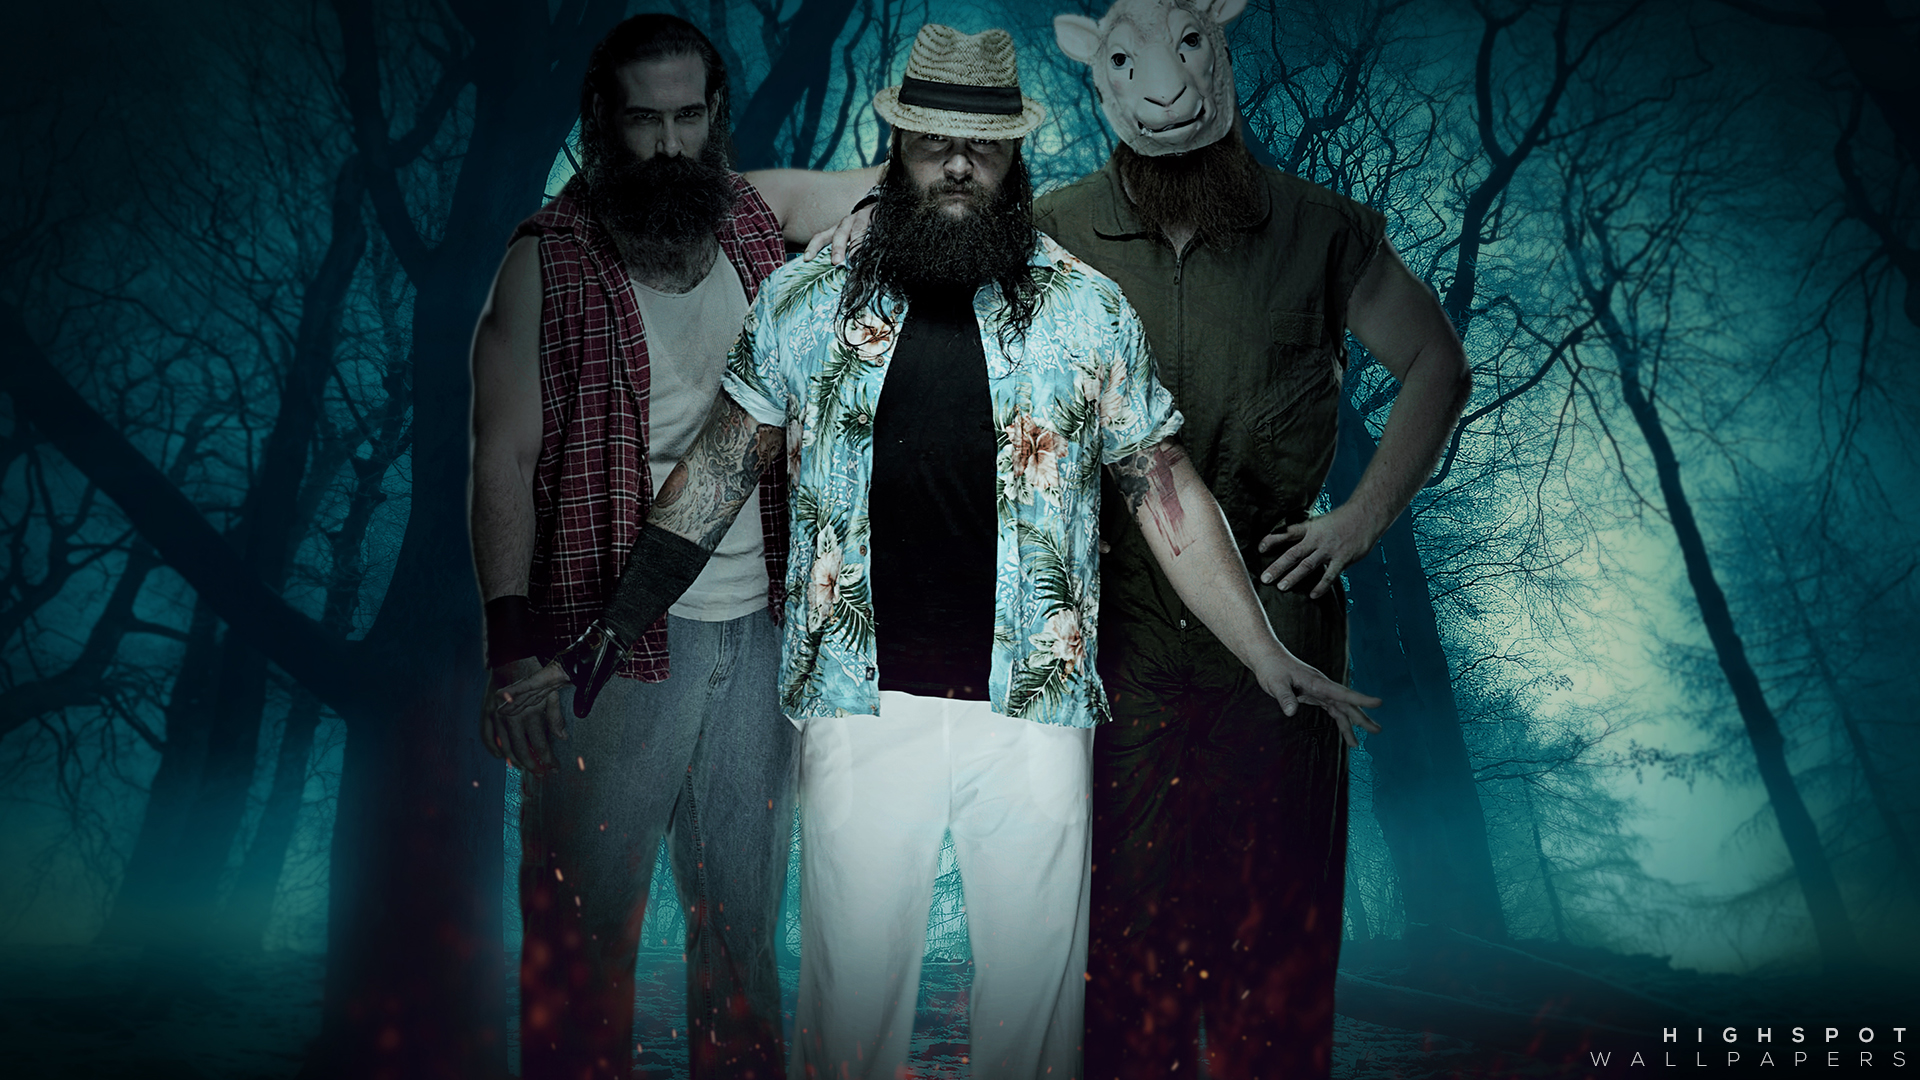 The Rock Hd Wallpapers 1080p The Wyatt Family Highspot Wrestling Wallpapers